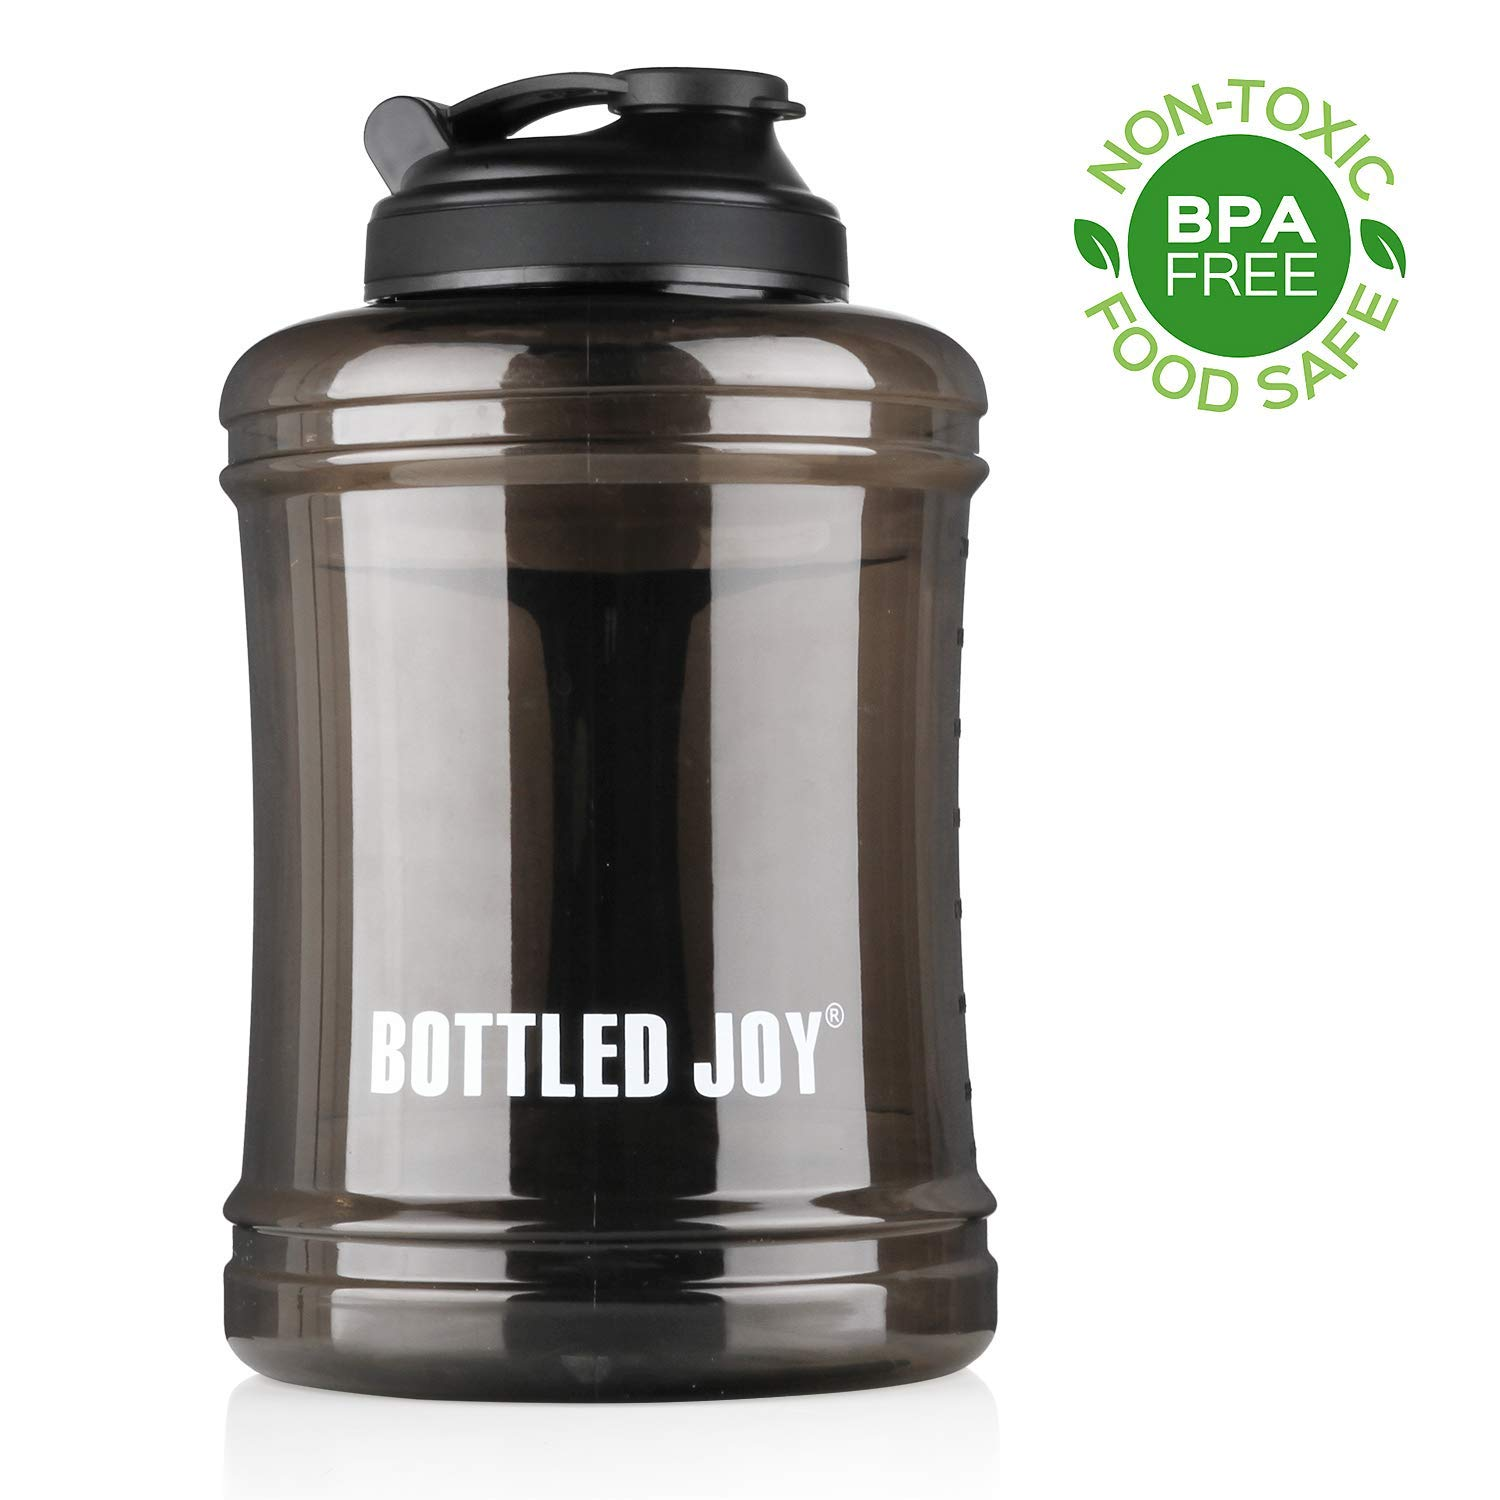 BOTTLED JOY 2.5L Large Capacity Water Bottle with Handle,Sport Large Water Bottle Gym Drinking, Half Gallon Reusable BPA Free Water Bottle 83oz 2500ml,Big Water Bottle for Gym Travel Outdoor